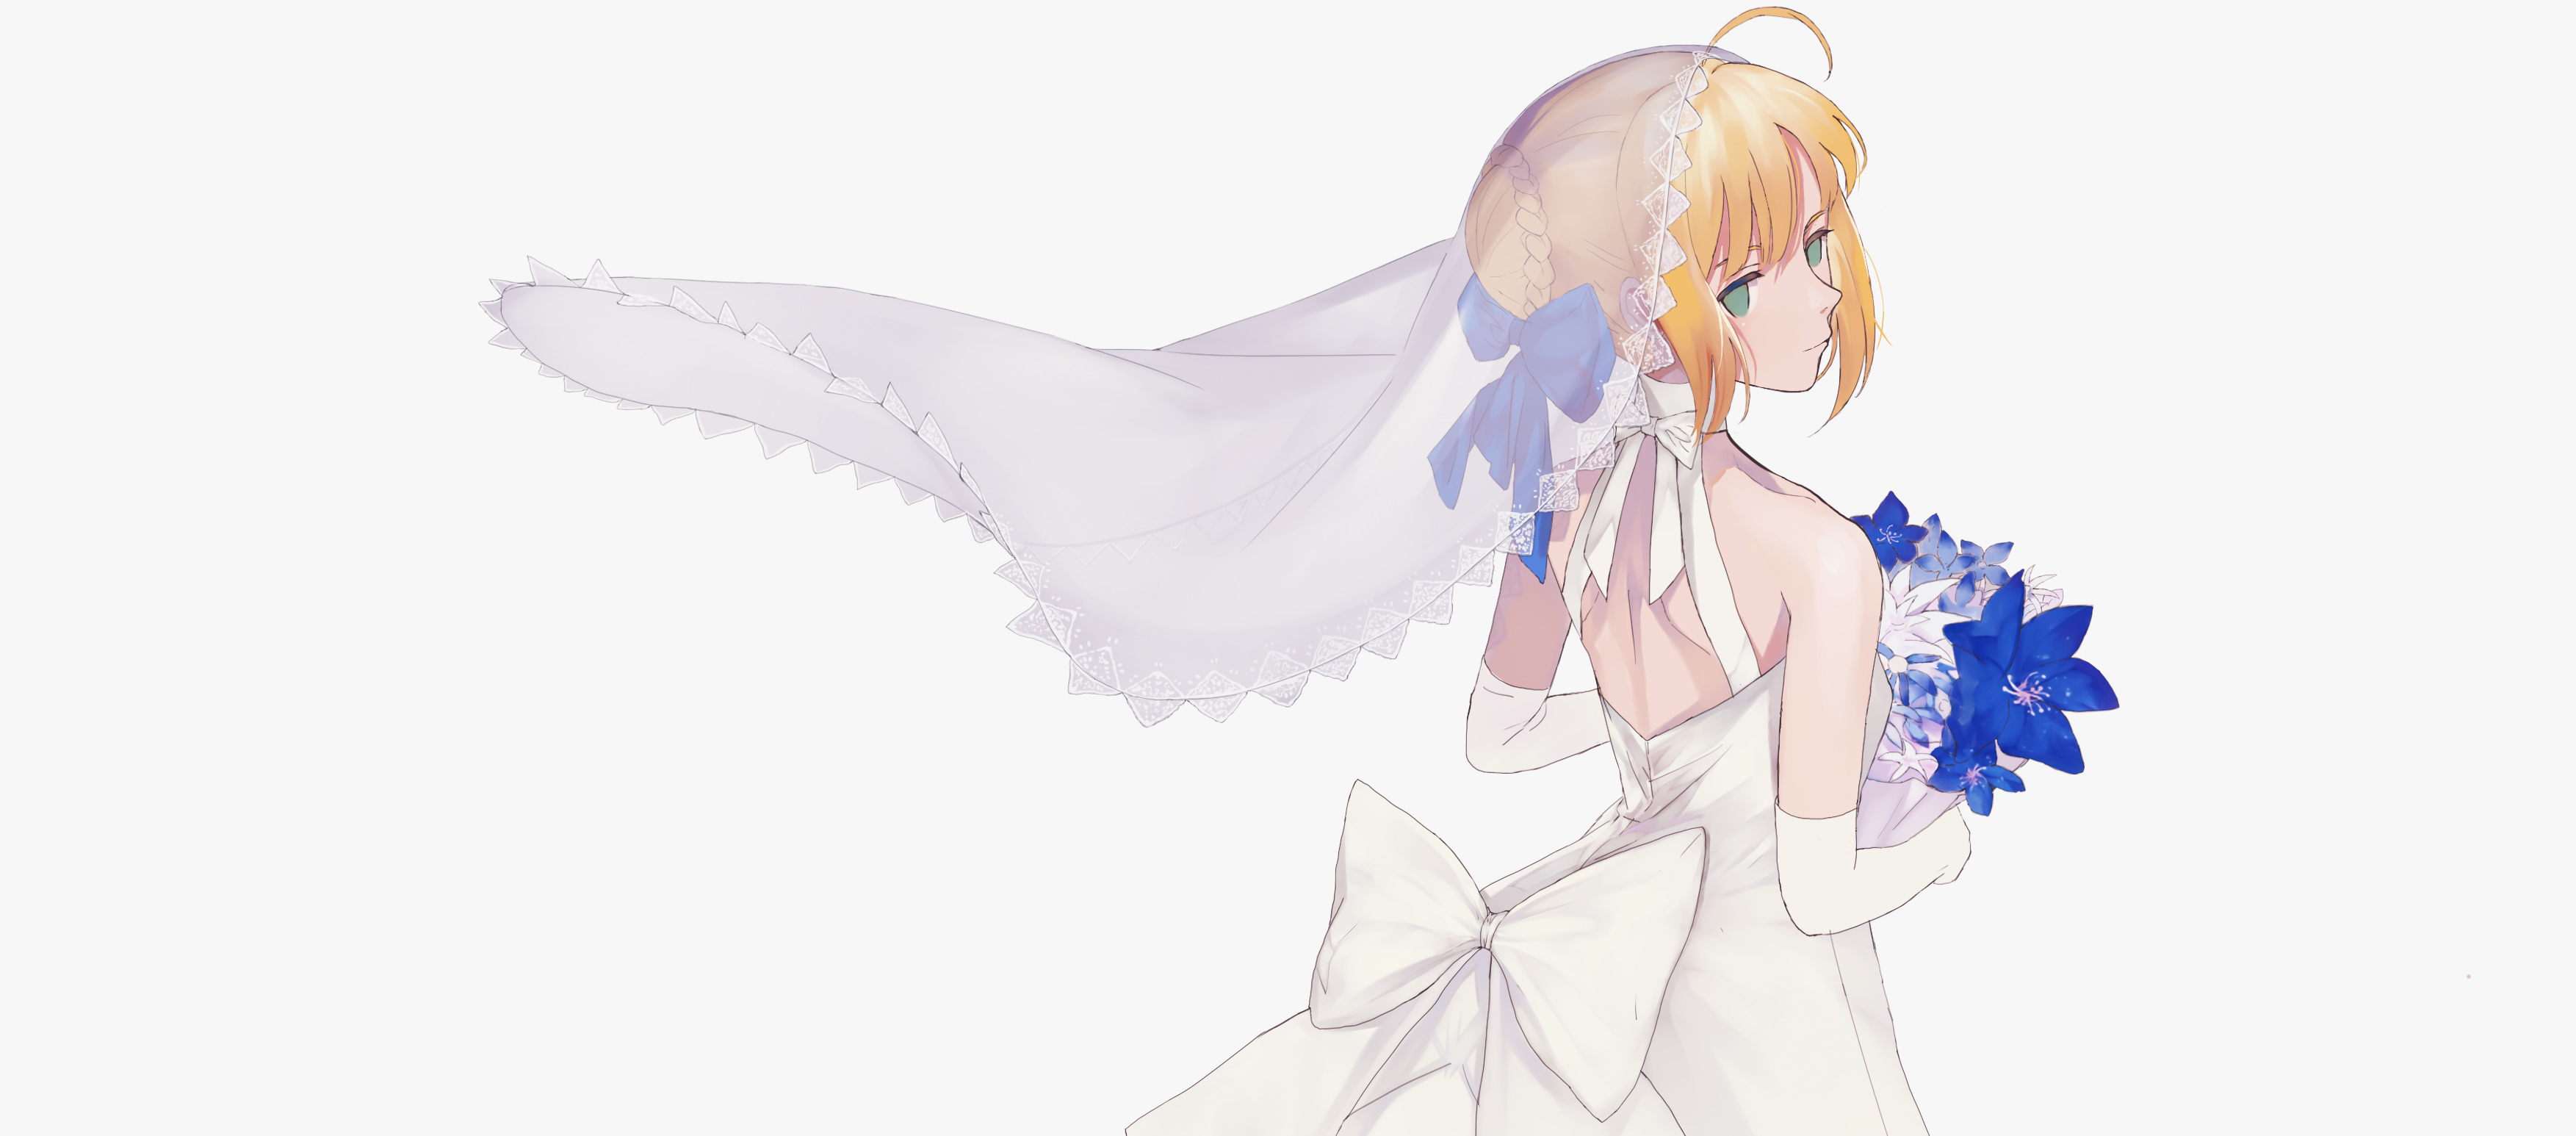 fate series fatestay night saber yong kit lam konachancom 3507x1546